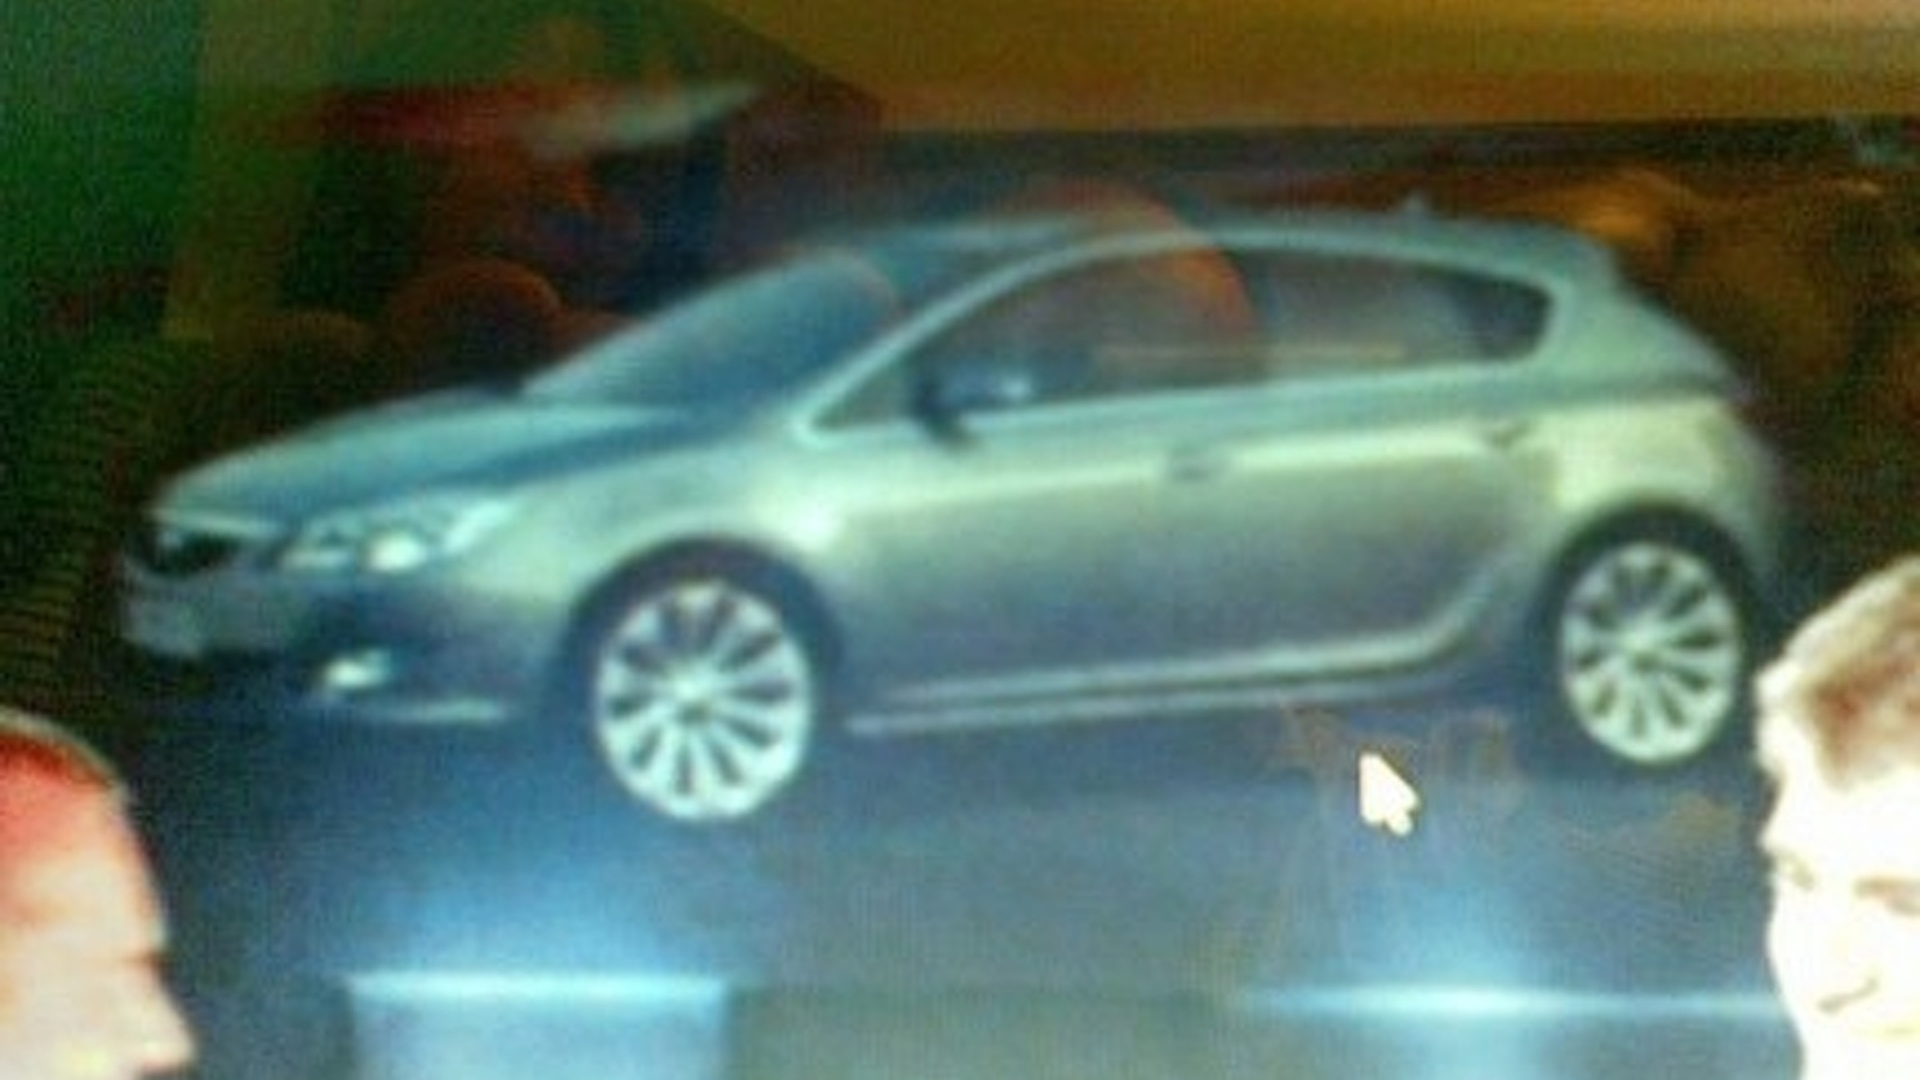 New Opel Astra image leaked from dealer presentation